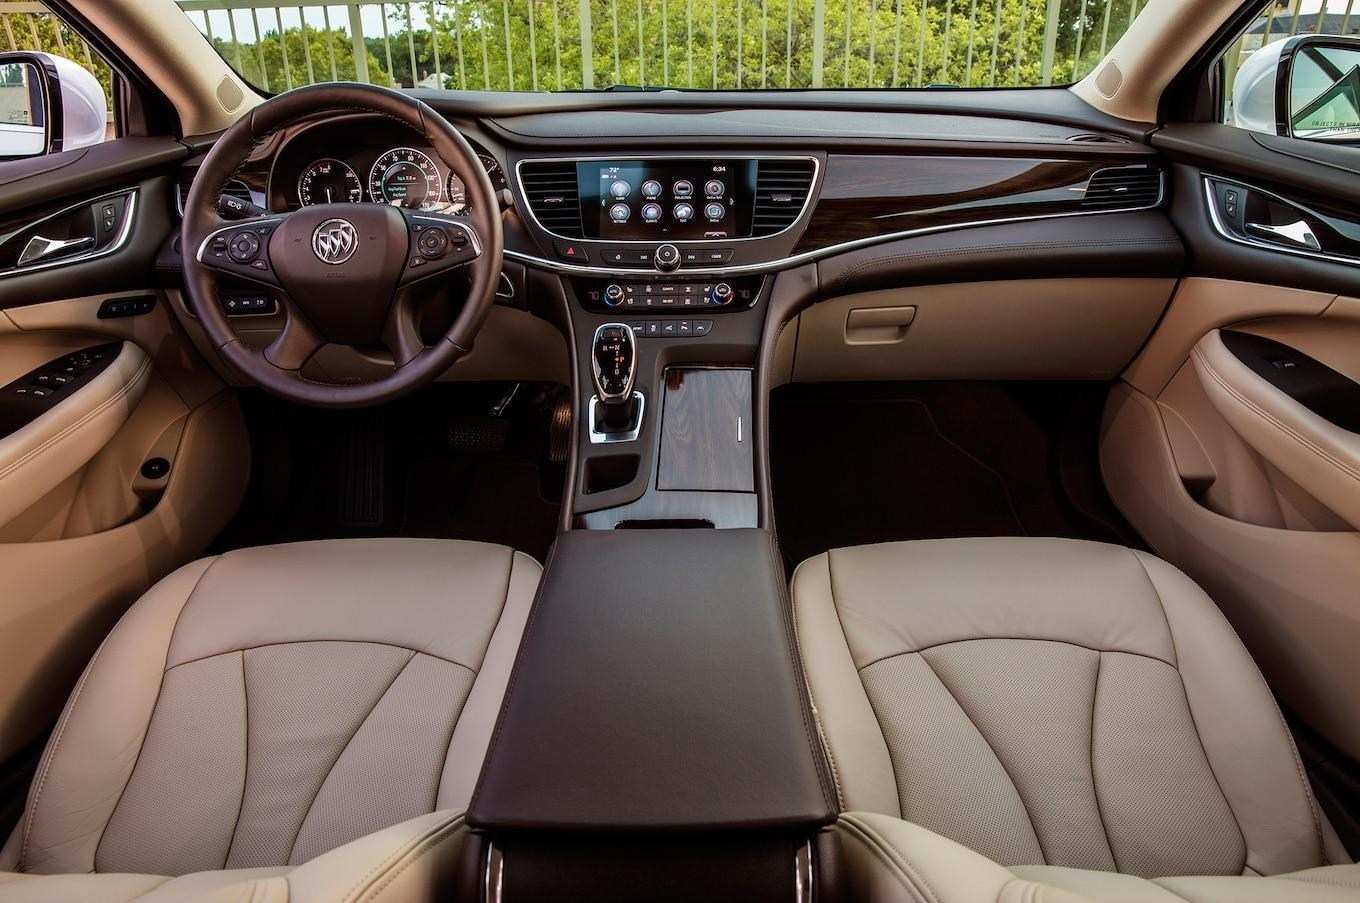 75 Great New Buick Lacrosse 2019 Reviews Concept Redesign And Review New Review for New Buick Lacrosse 2019 Reviews Concept Redesign And Review